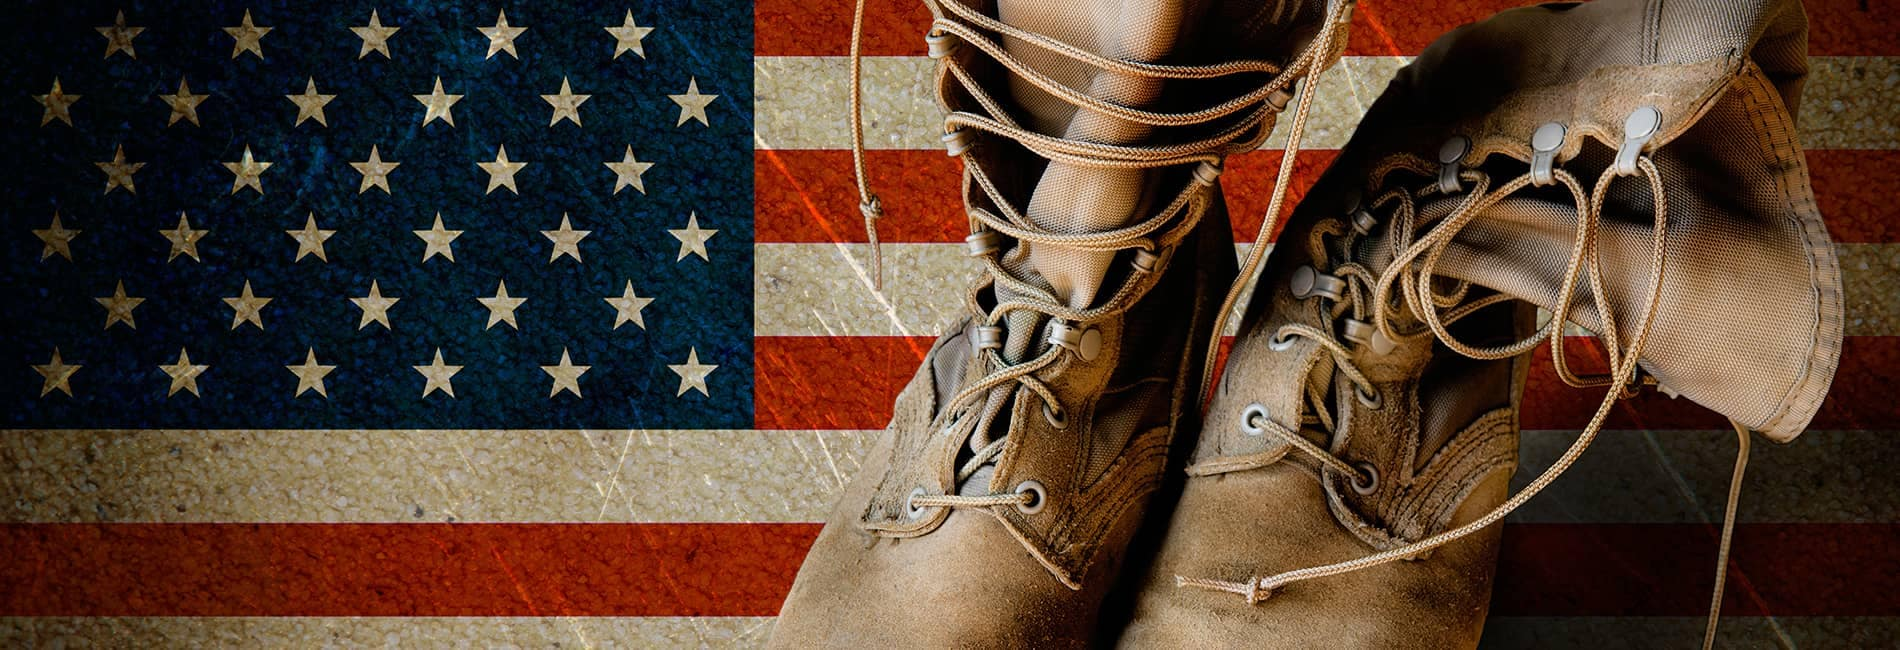 Military Boots and an American Flag